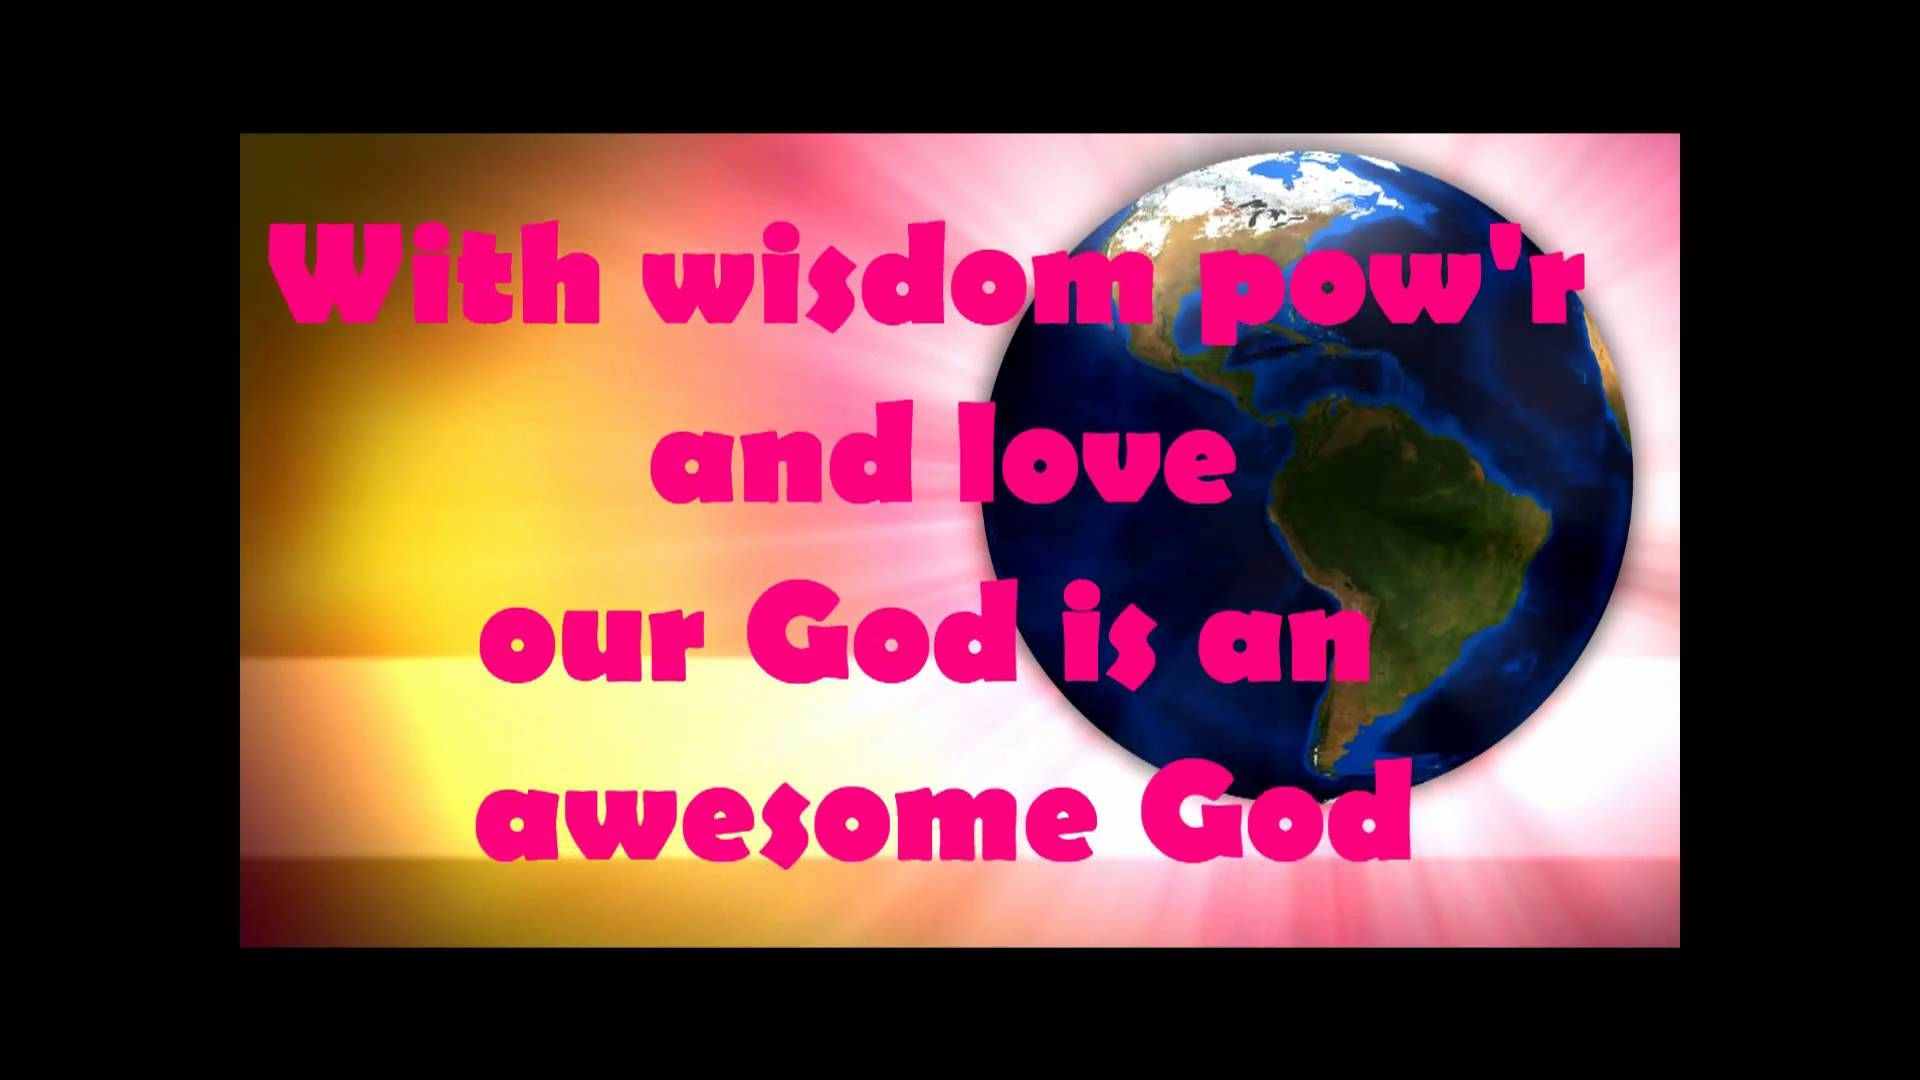 AWESOME GOD - Children's Worship song (+playlist) | Visual